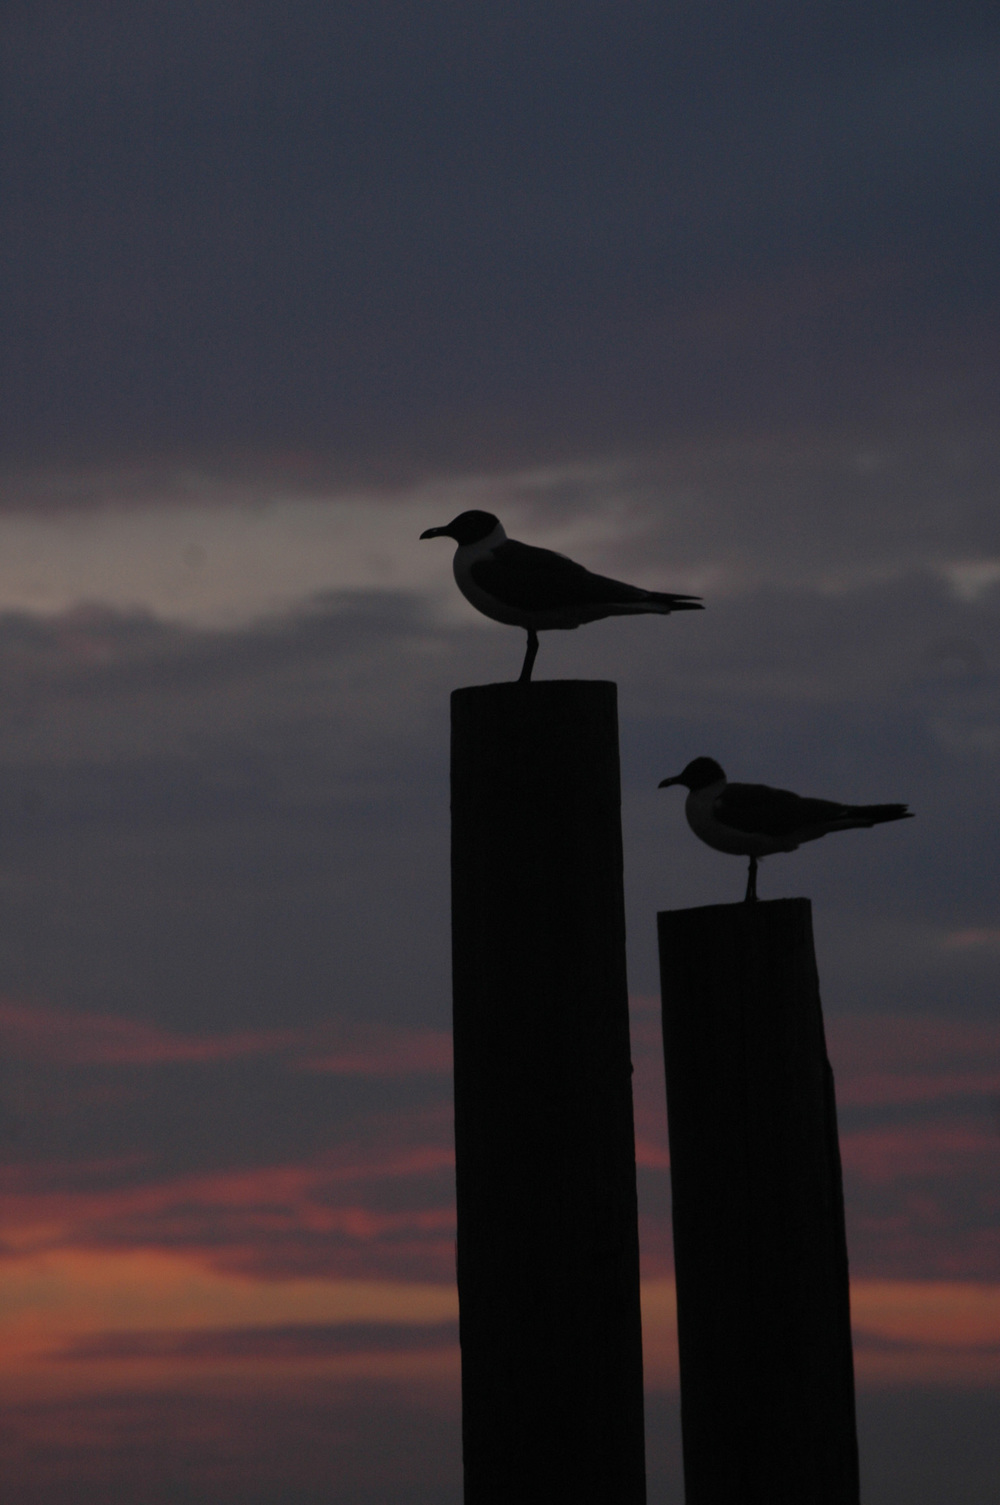 gulls at night